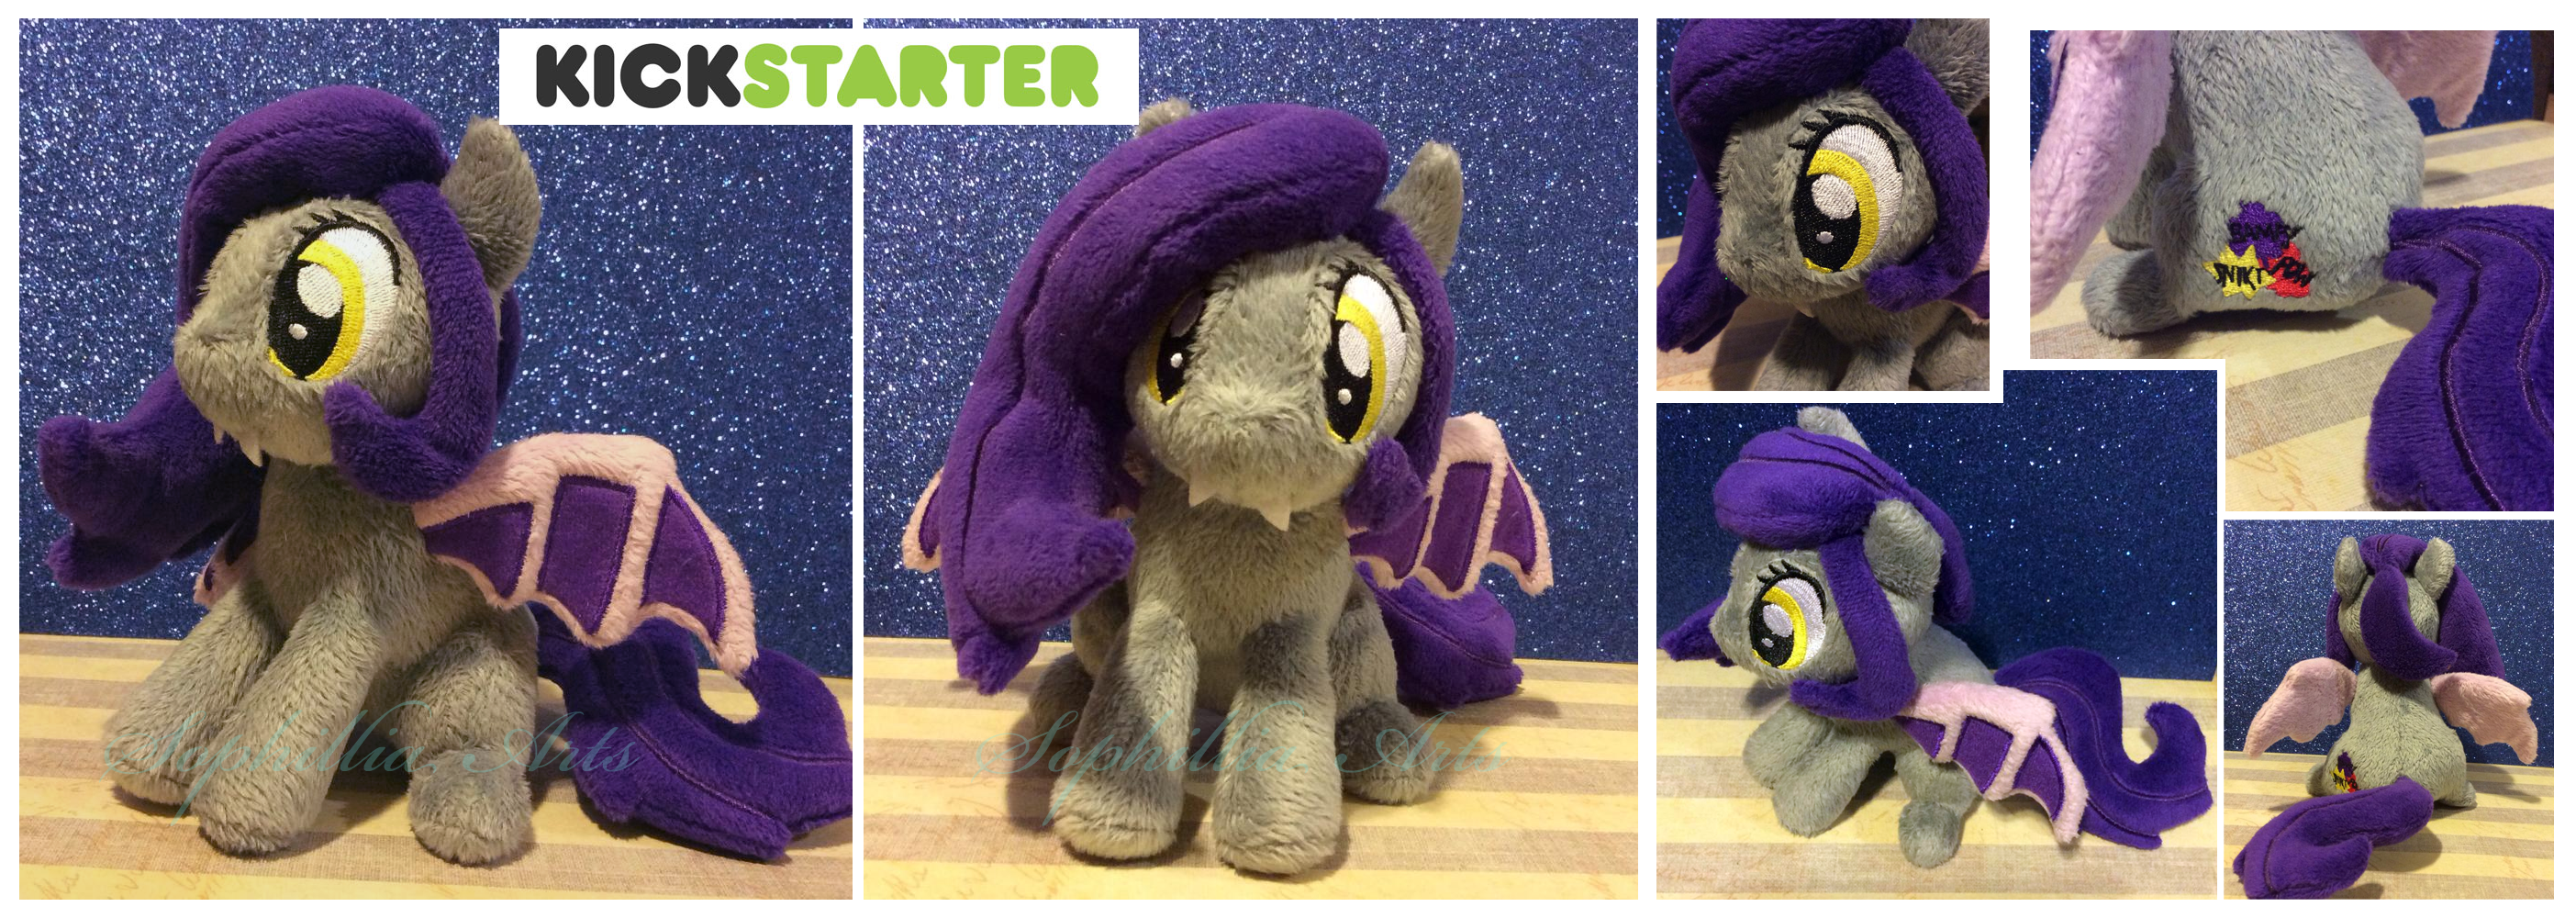 For Sale: Mona Pia Kickstarter Plush by Sophillia